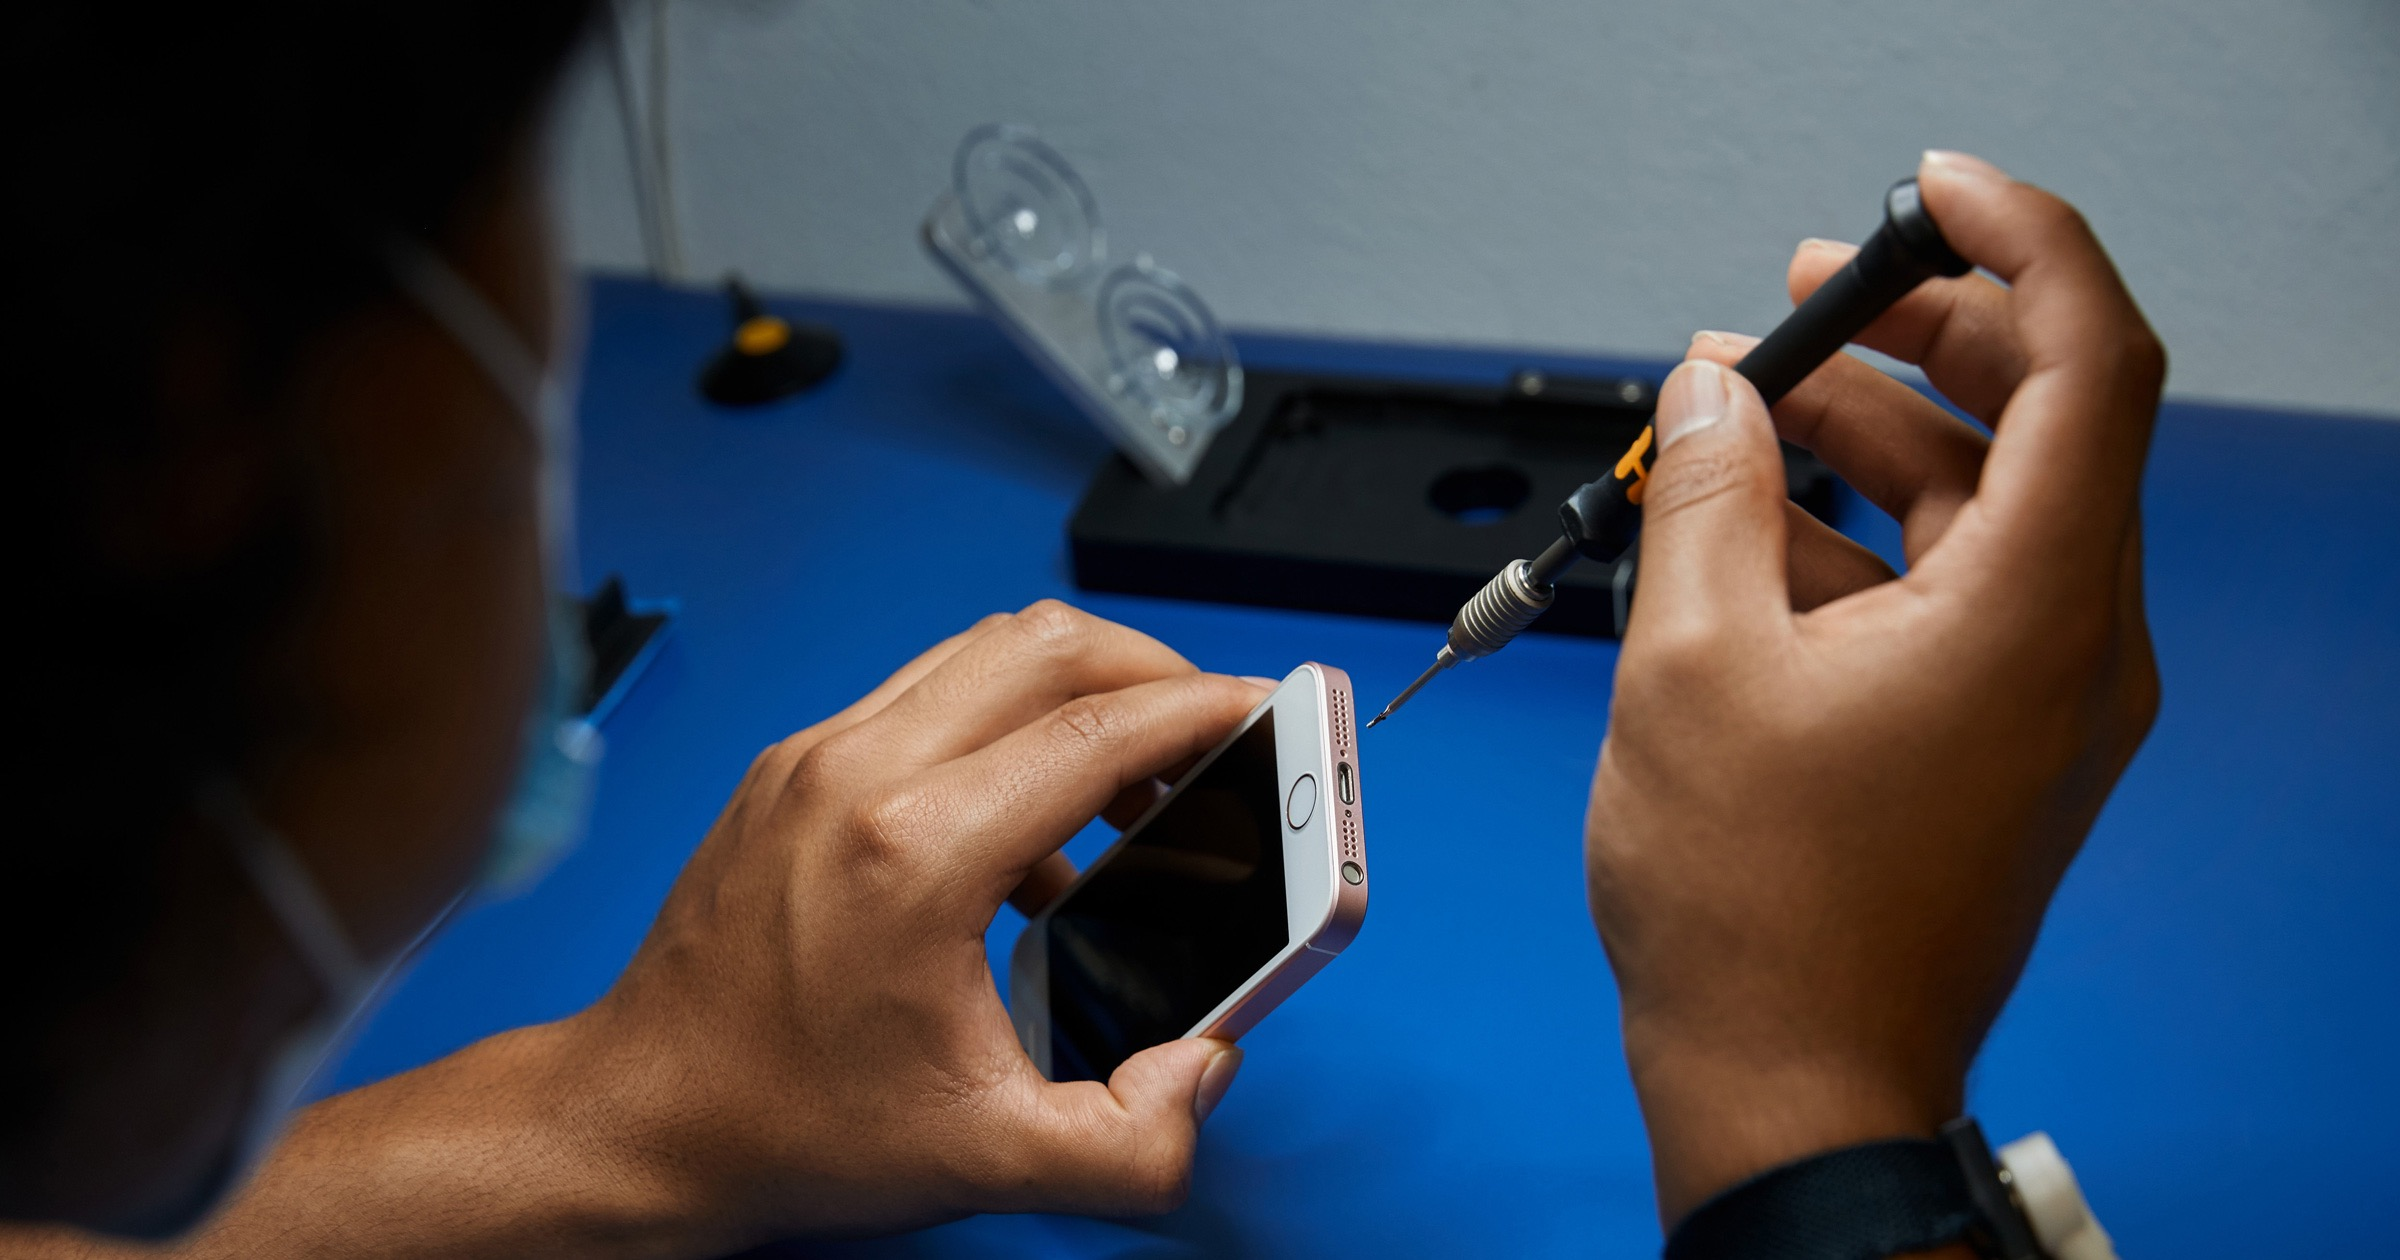 Apple's Independent Repair Provider Program will soon expand to more than 200 countries.